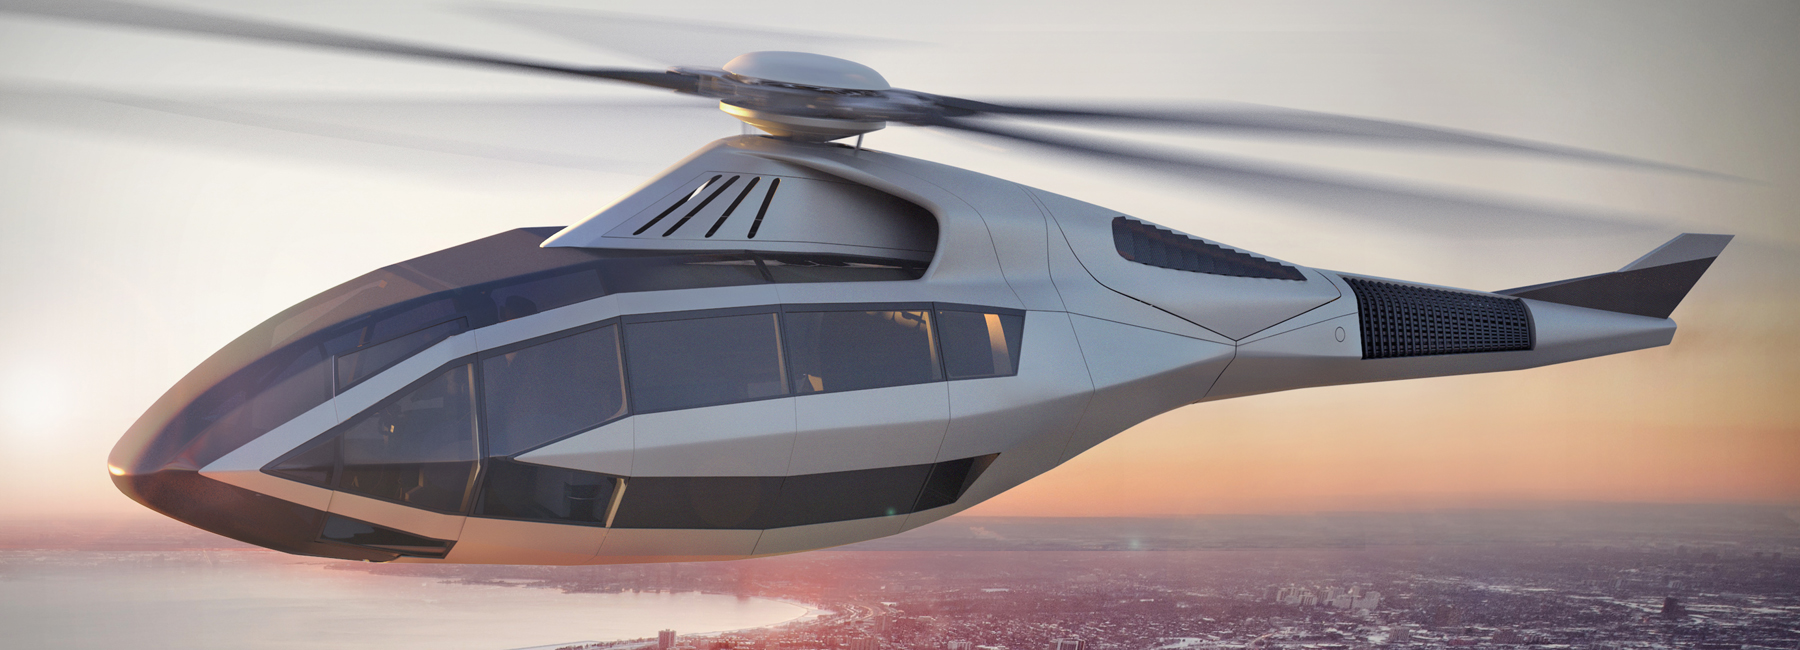 Bell FCX 001 Helicopter Concept Image